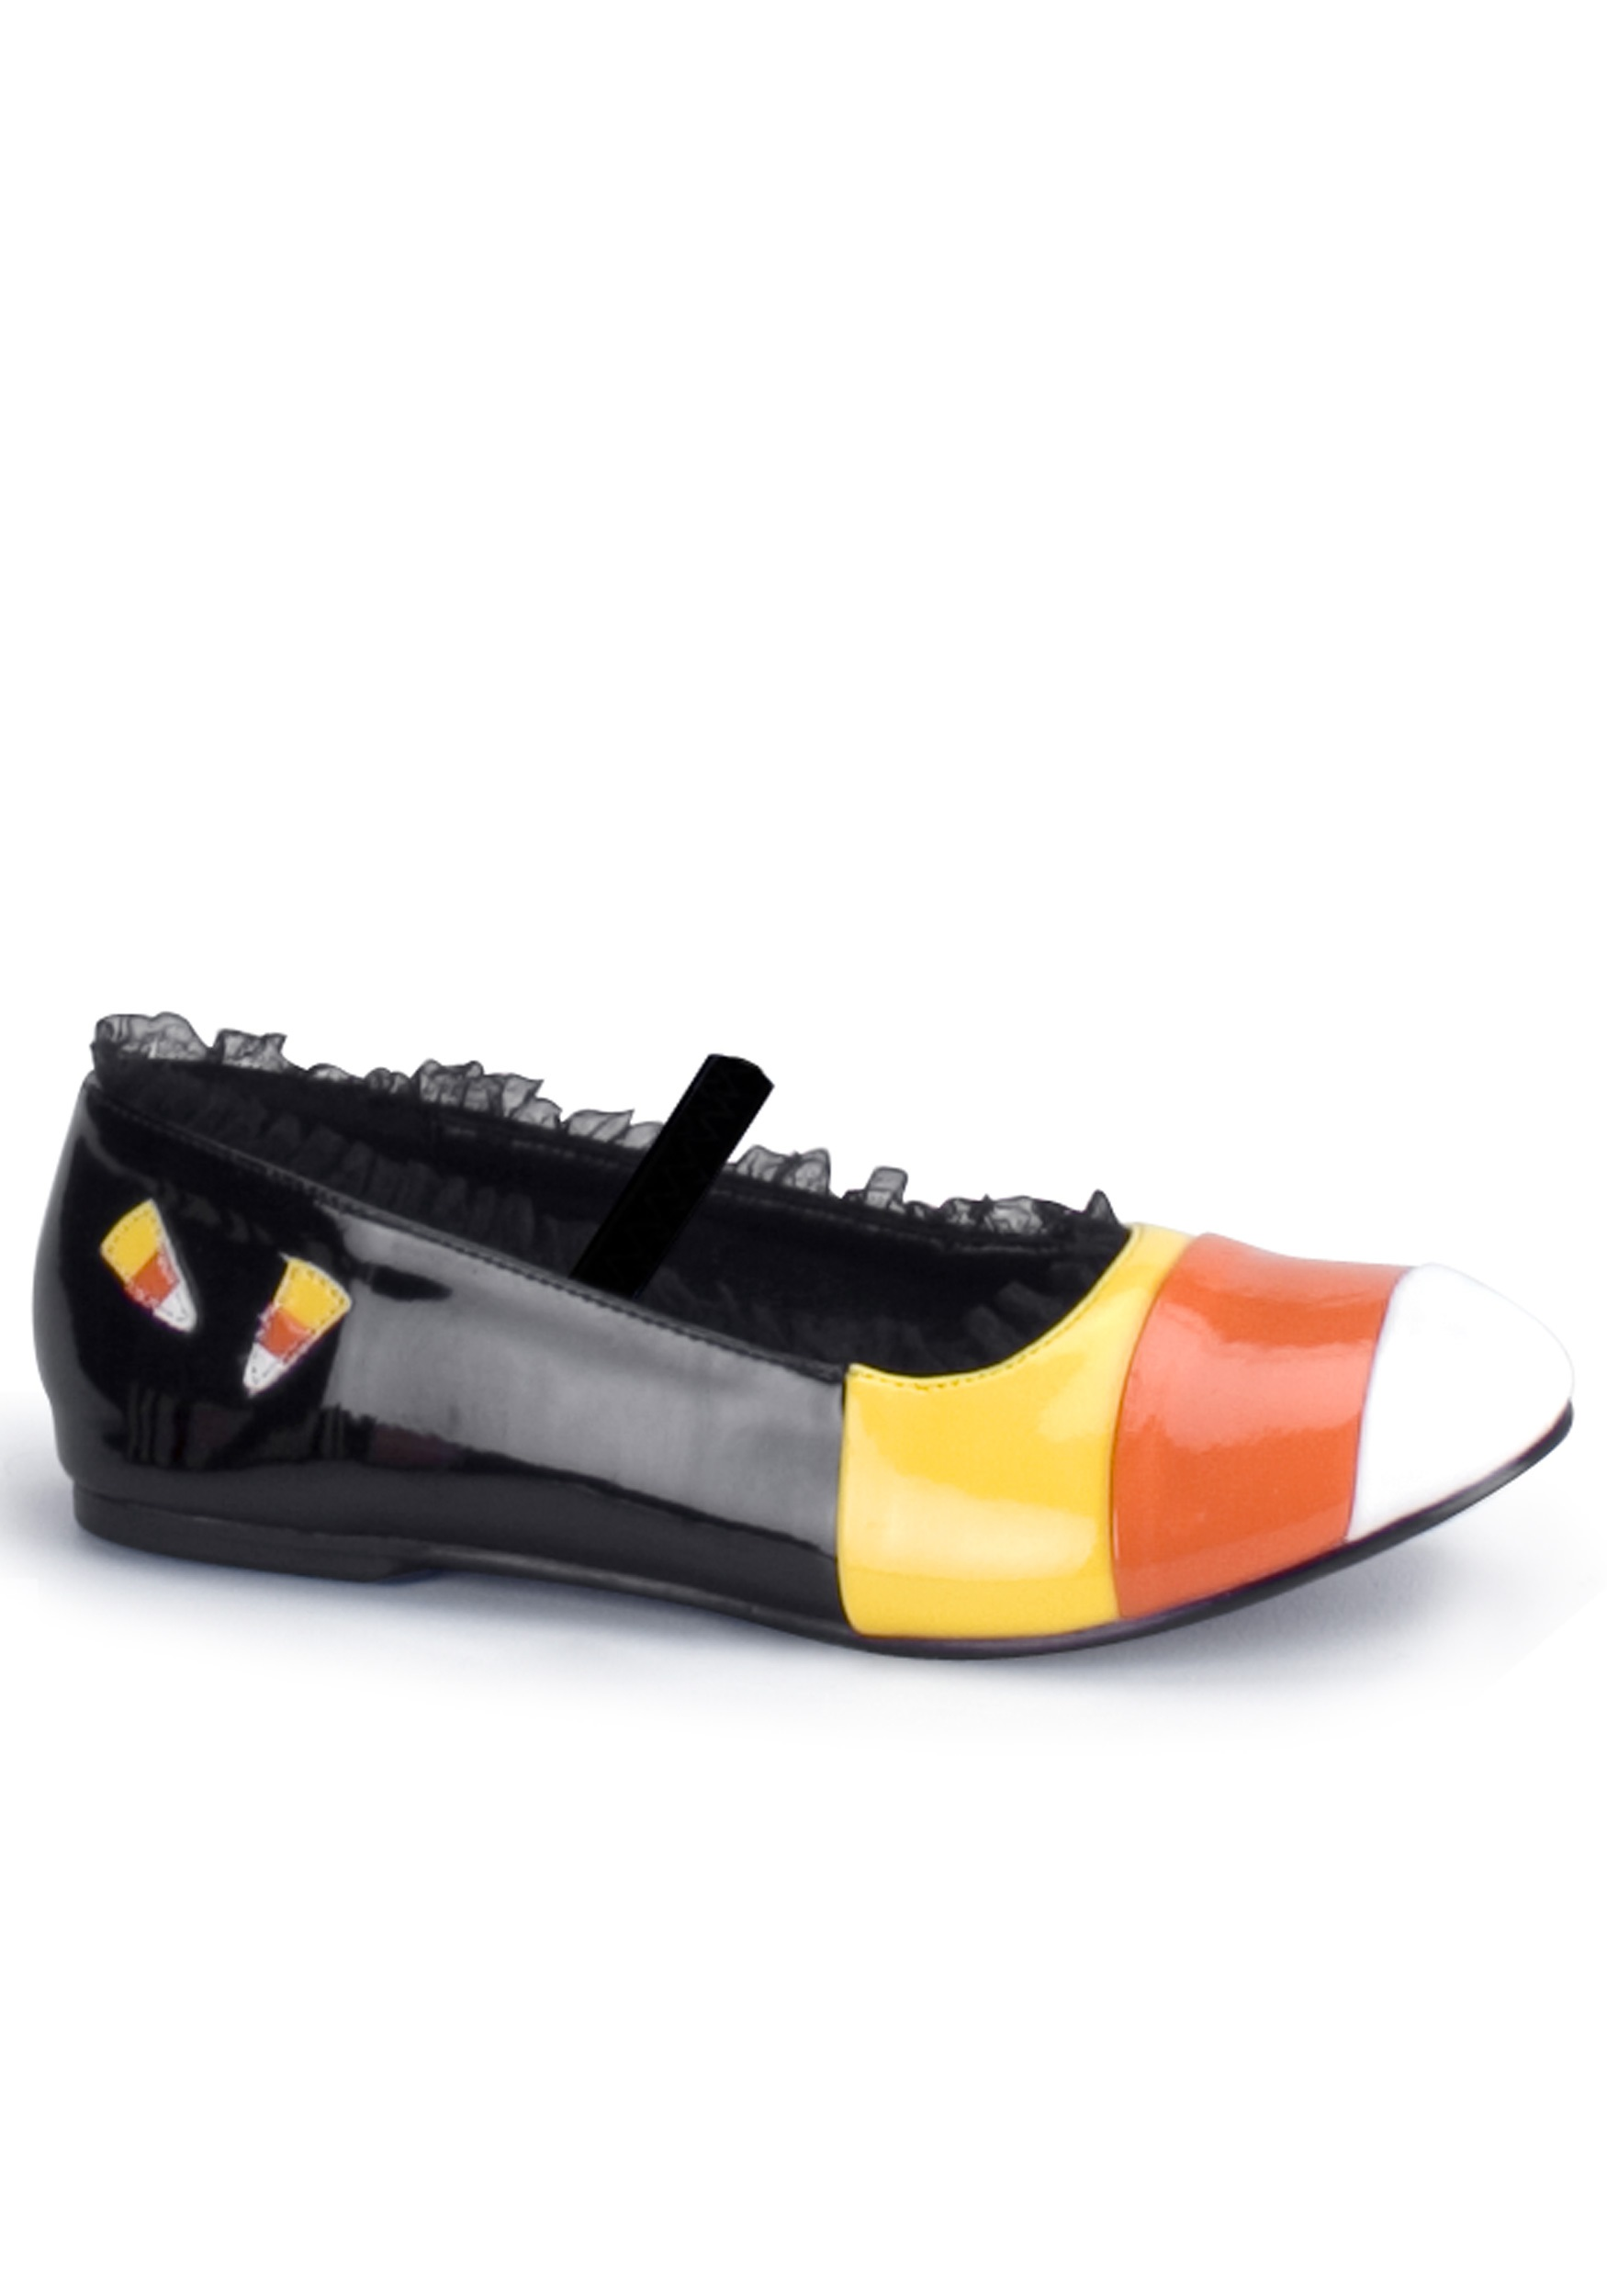 Girls Candy Corn Shoes  sc 1 st  Halloween Costumes & Girls Candy Corn Shoes - Halloween Costumes